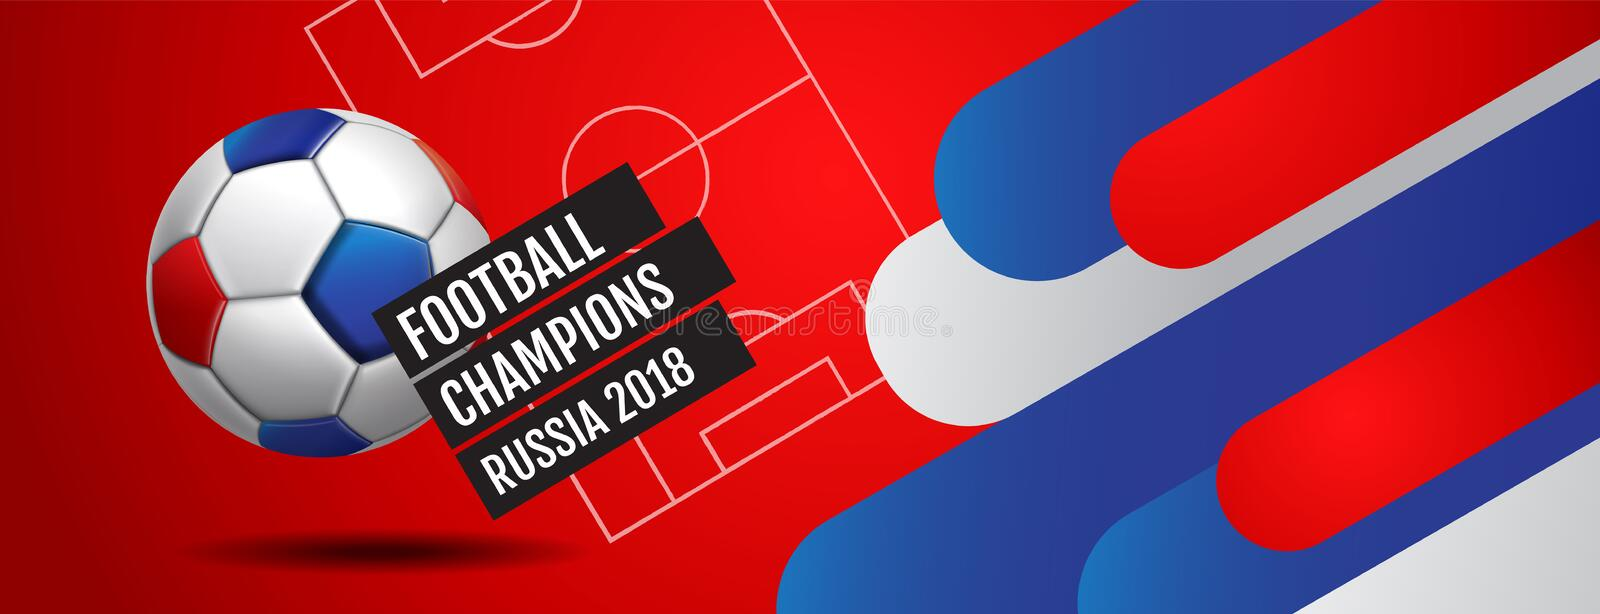 Football 2018 world championship cup background soccer, Russia royalty free illustration